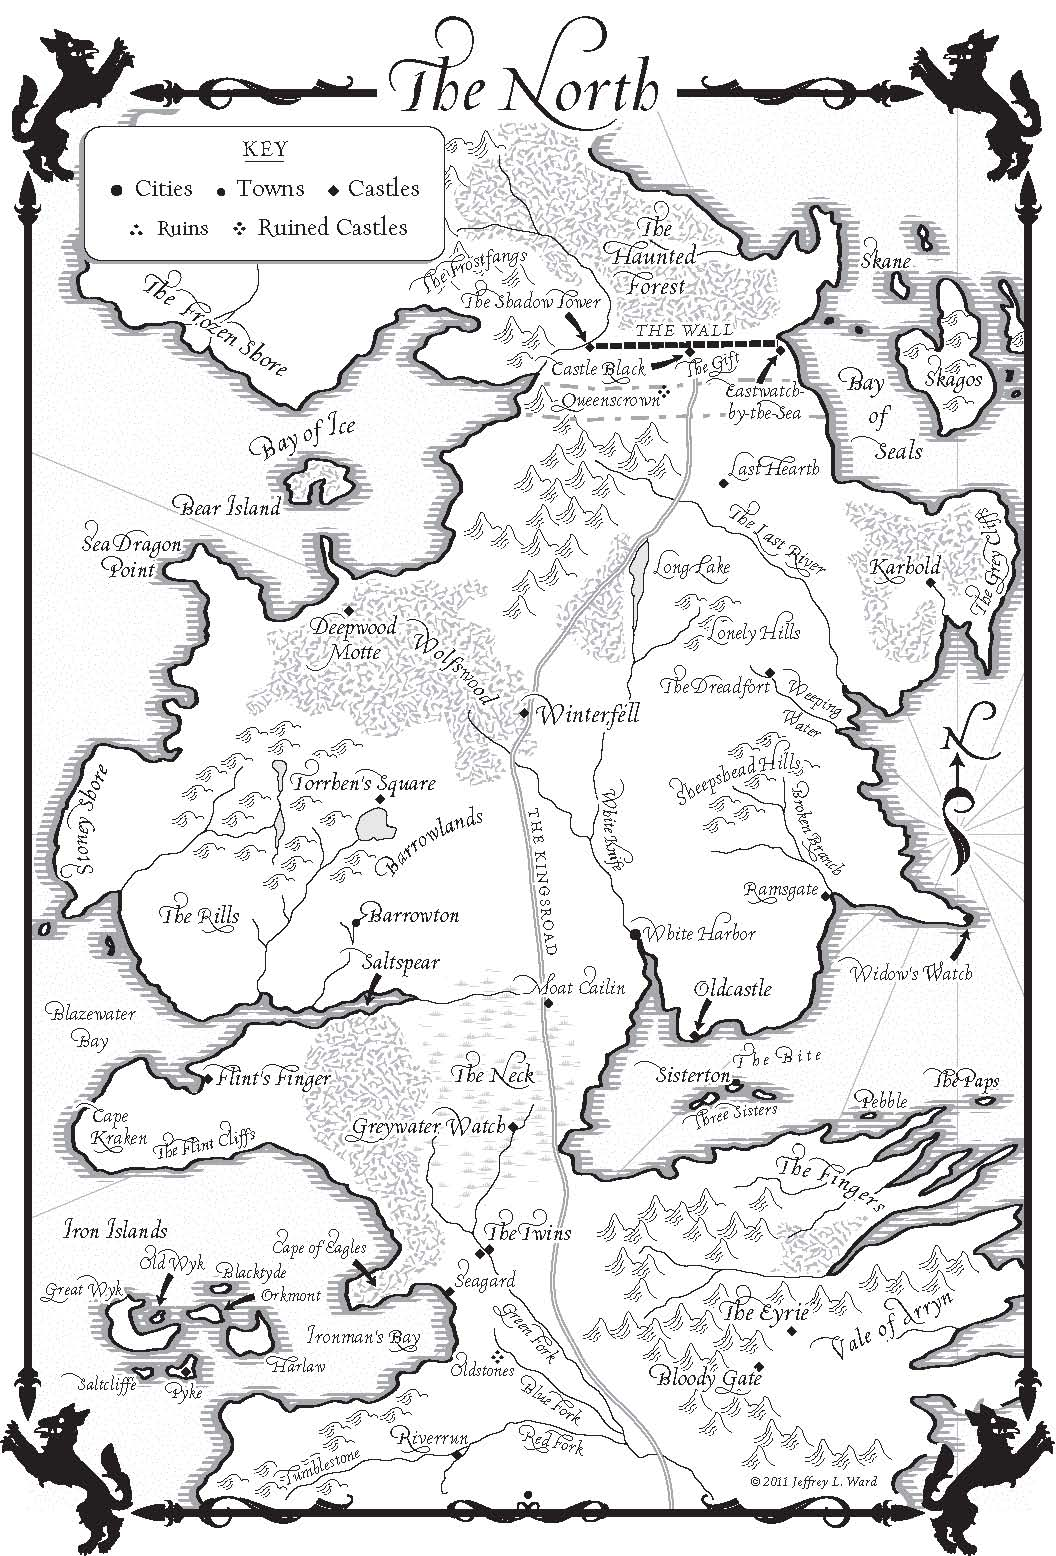 A Dance With Dragons Map Of The North